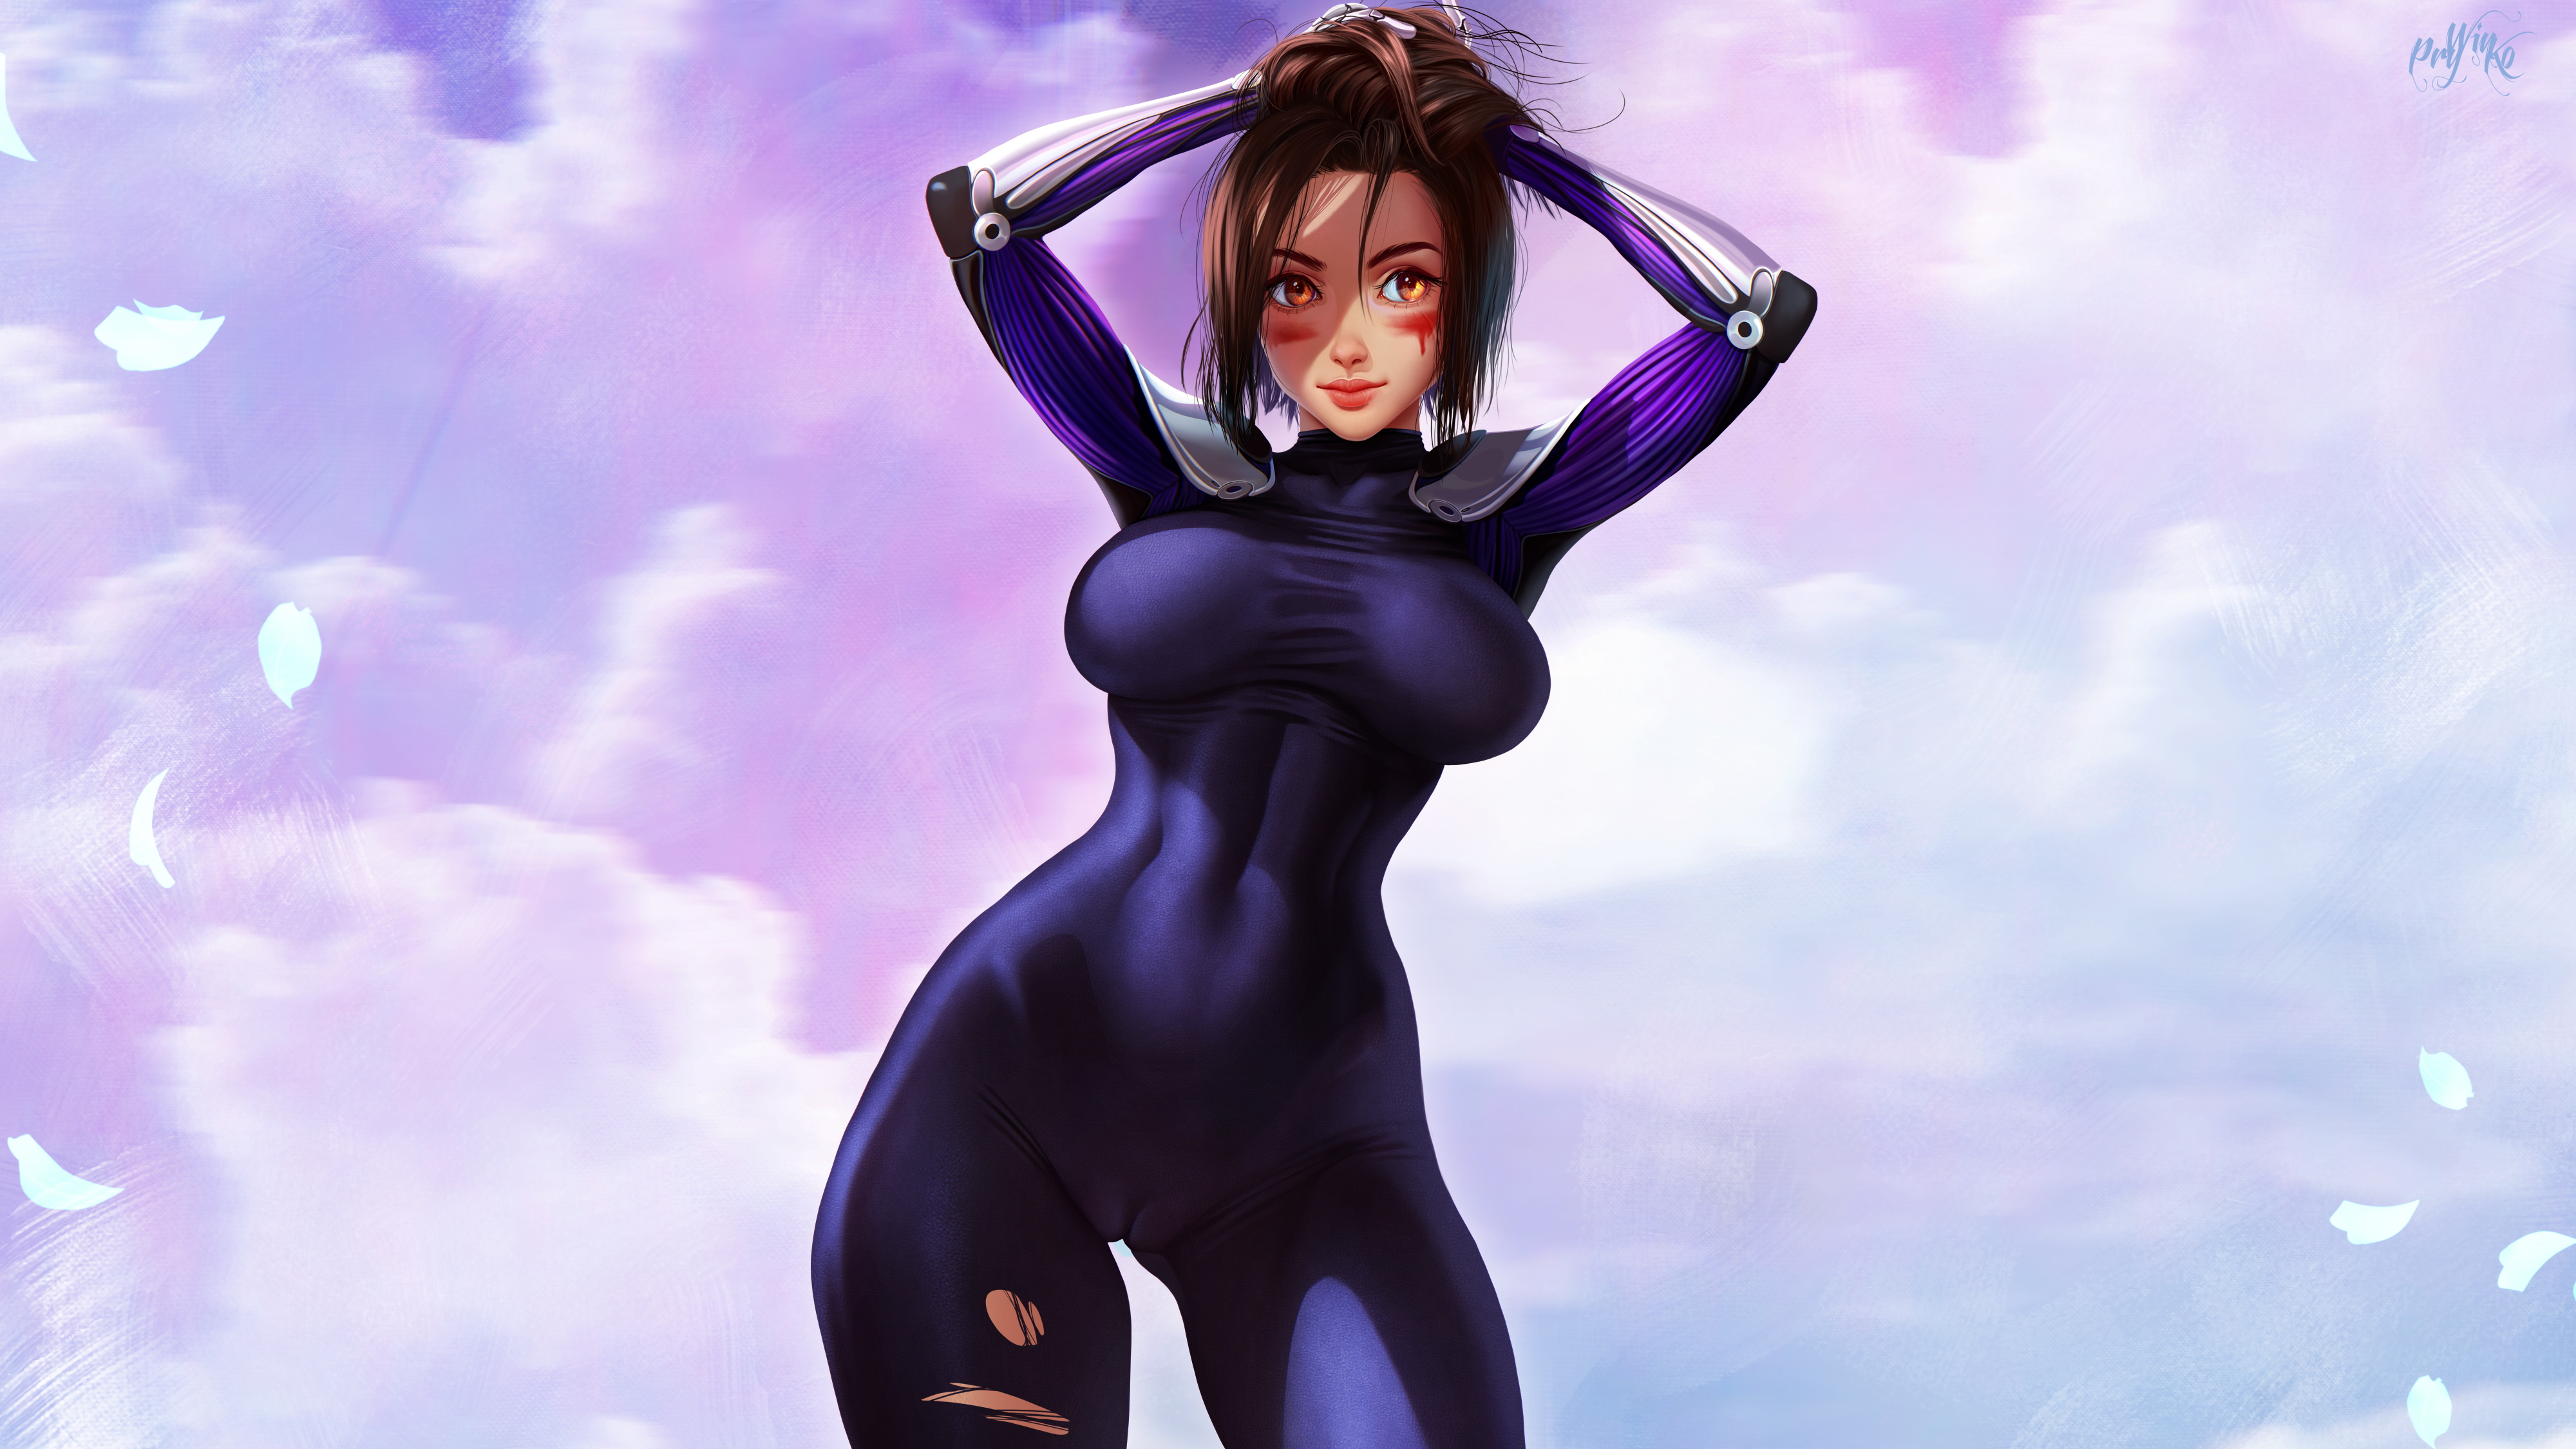 Anime 4000x2250 Alita Alita: Battle Angel anime anime girls brunette hands on head cyborg science fiction fantasy girl looking at viewer blood tight clothing curvy cameltoe the gap clouds ripped clothes artwork digital art drawing fan art Prywinko GUNNM